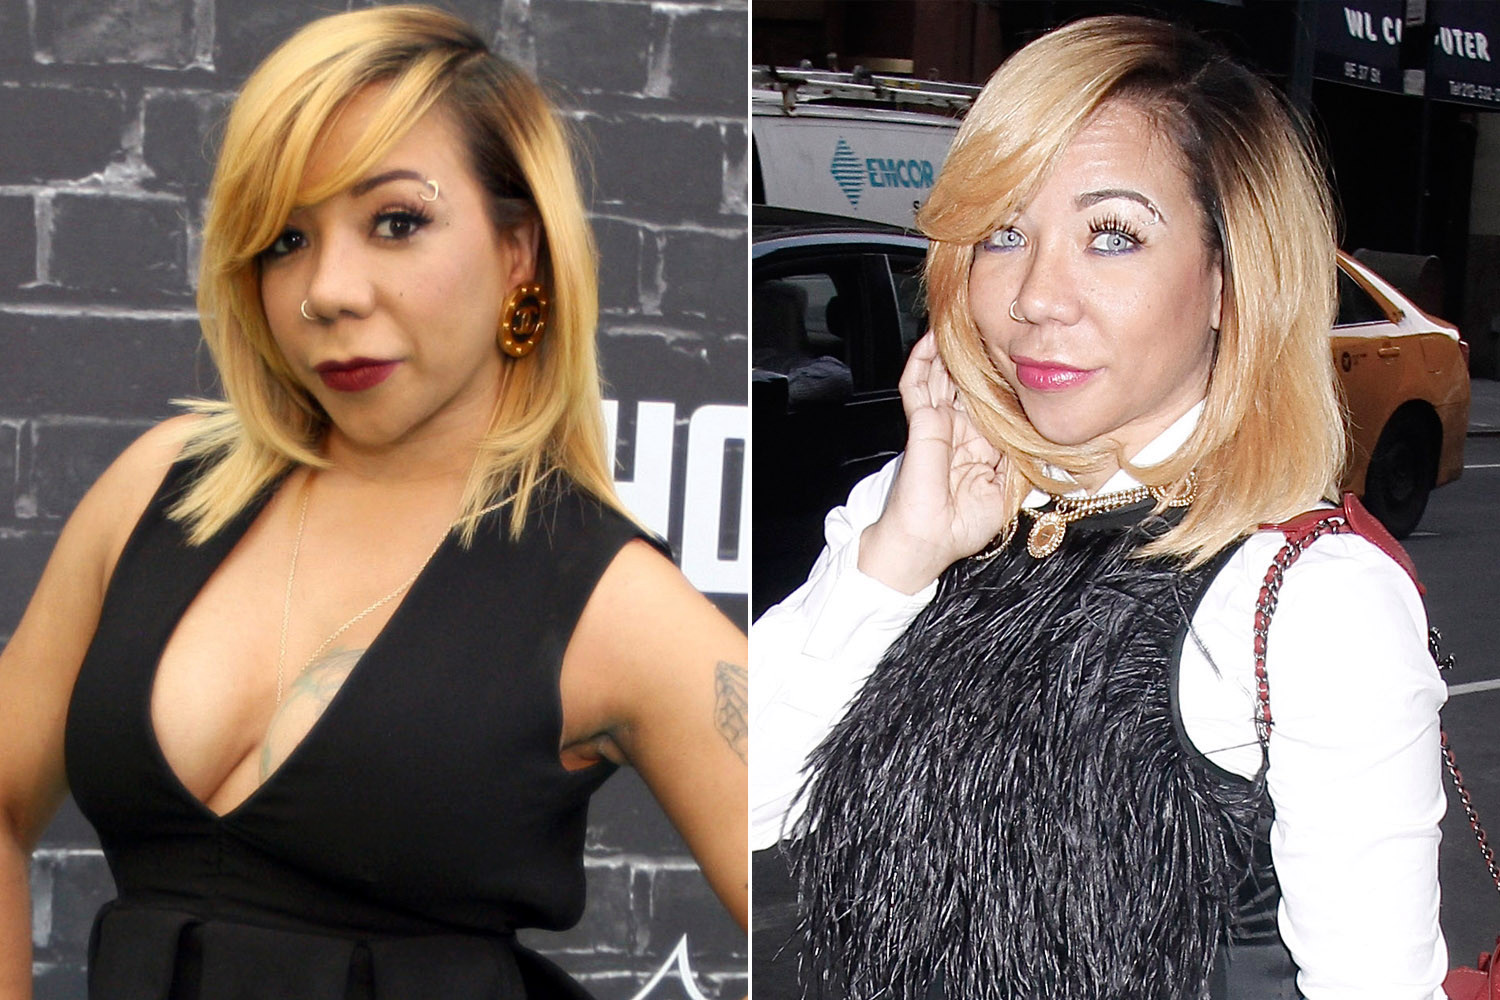 Tiny Harris Shares A Bunch Of Throwback Photos But People Accuse Her Of Having Too Many Cosmetic Surgeries